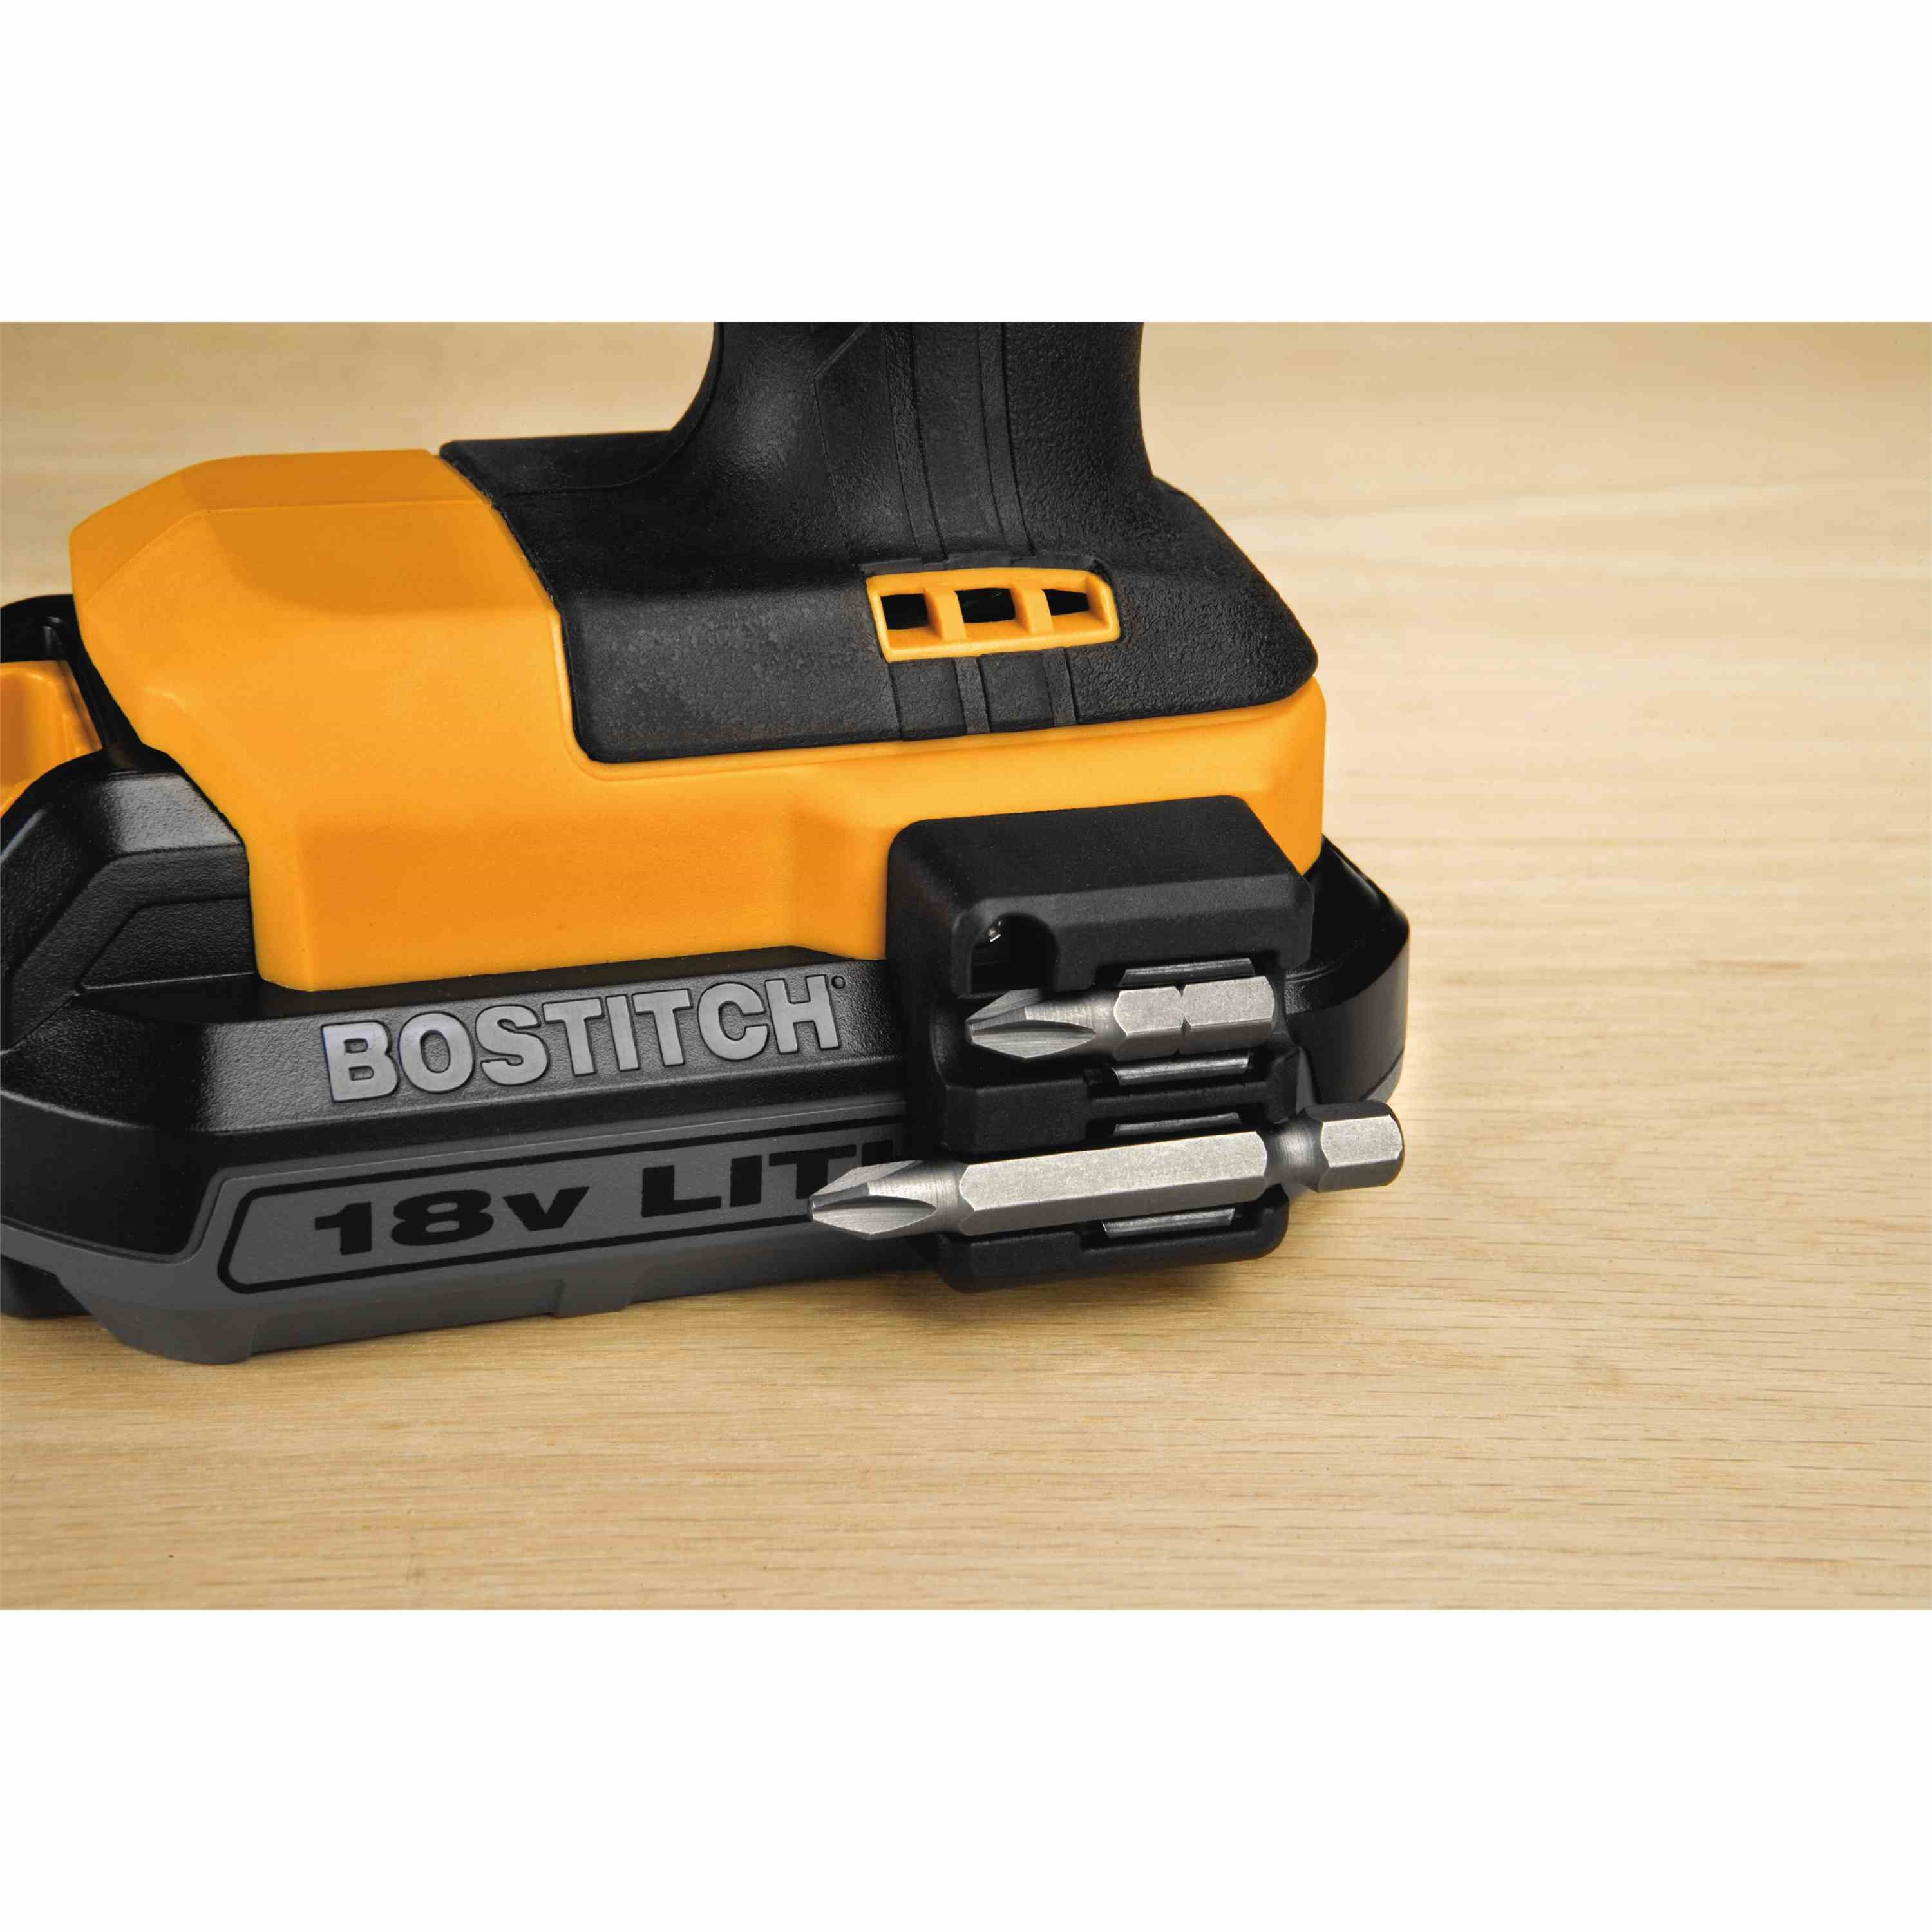 Bostitch - 18V 12 Lithium DrillDriver Kit - BTC400LB